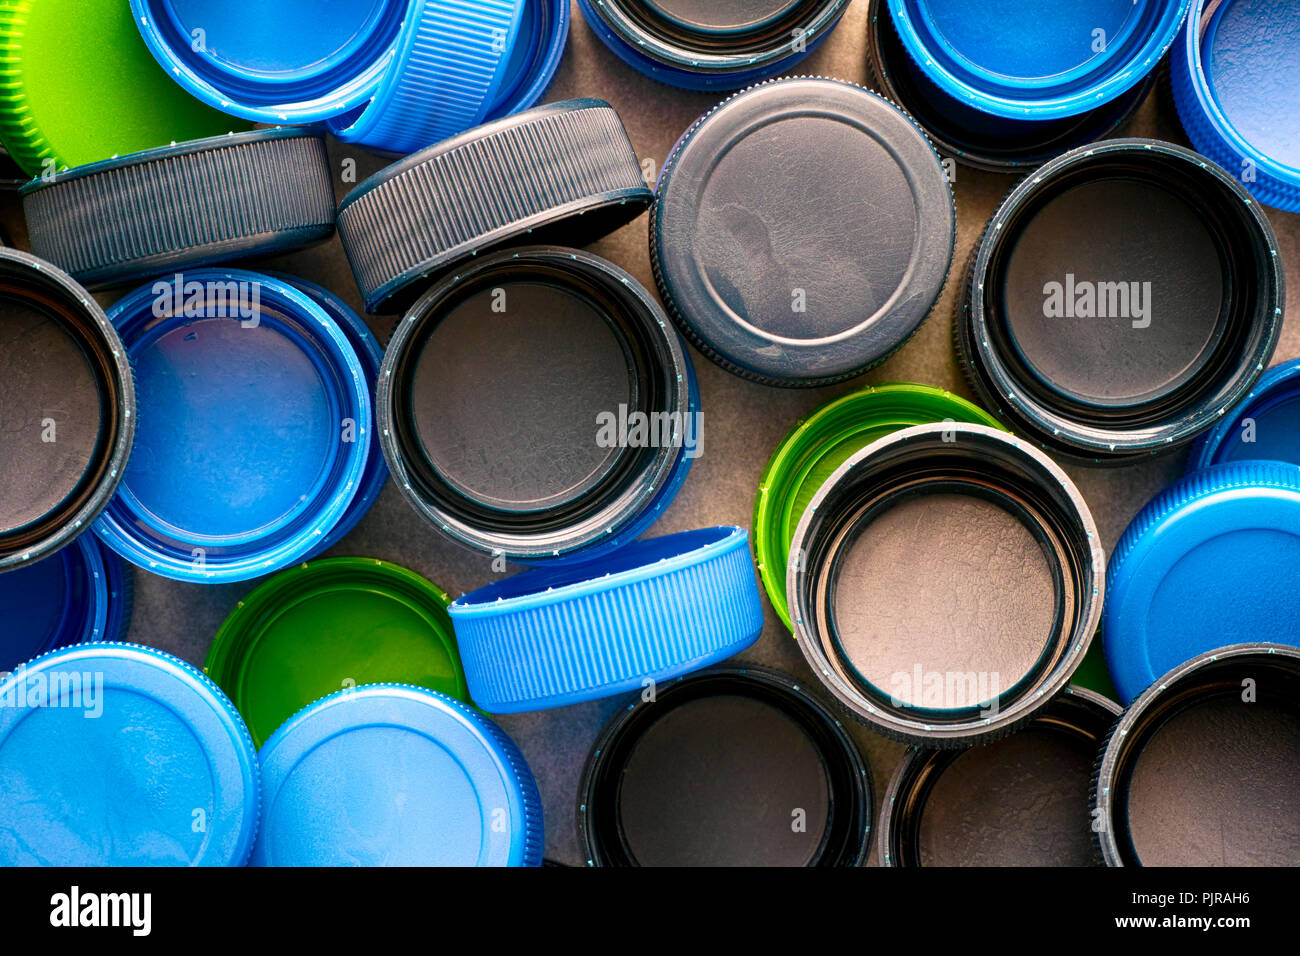 Plastic caps on black backgrounds. Close-up. - Stock Image